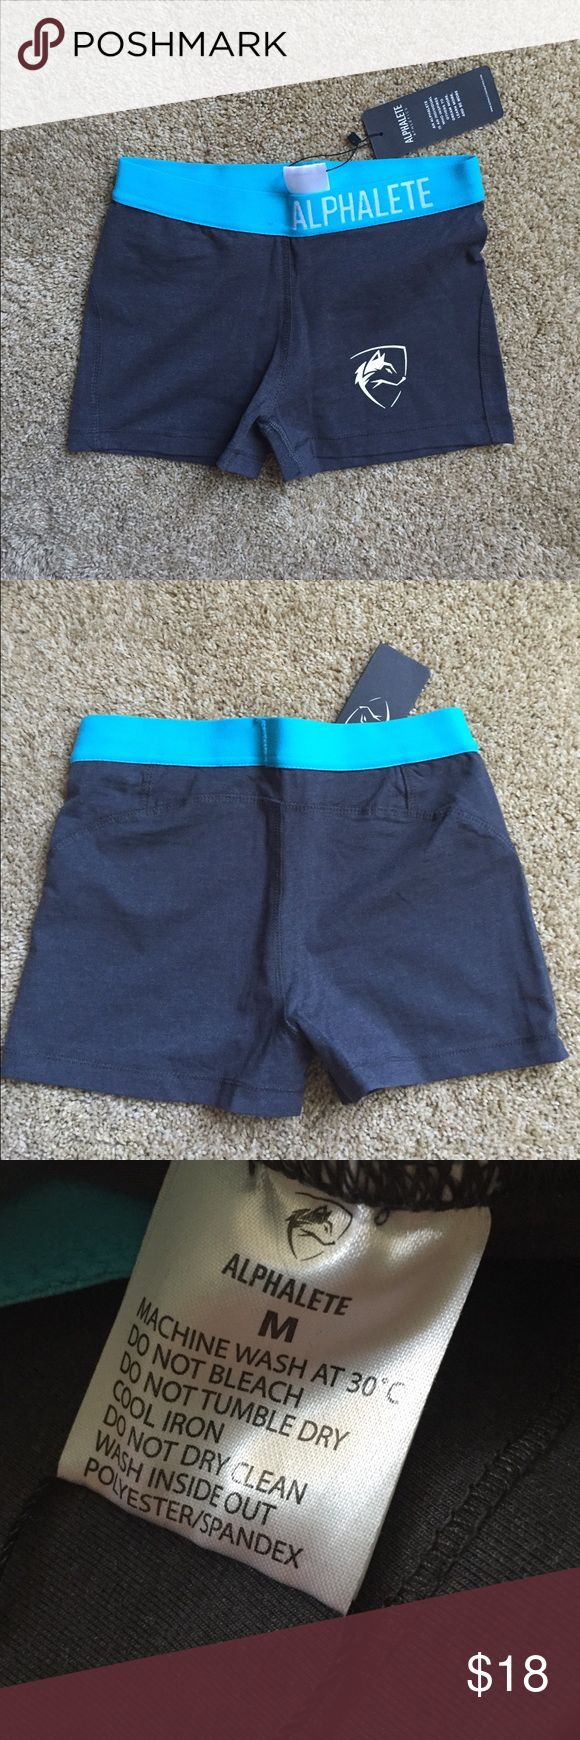 Alphalete Athletics Compression Shorts Alphalete Athletics compression shorts. These are a size M but fit like a S. That is why I am selling them. They do not stretch like Nike compression shorts but are a nice quality Alphalete Athletics Shorts